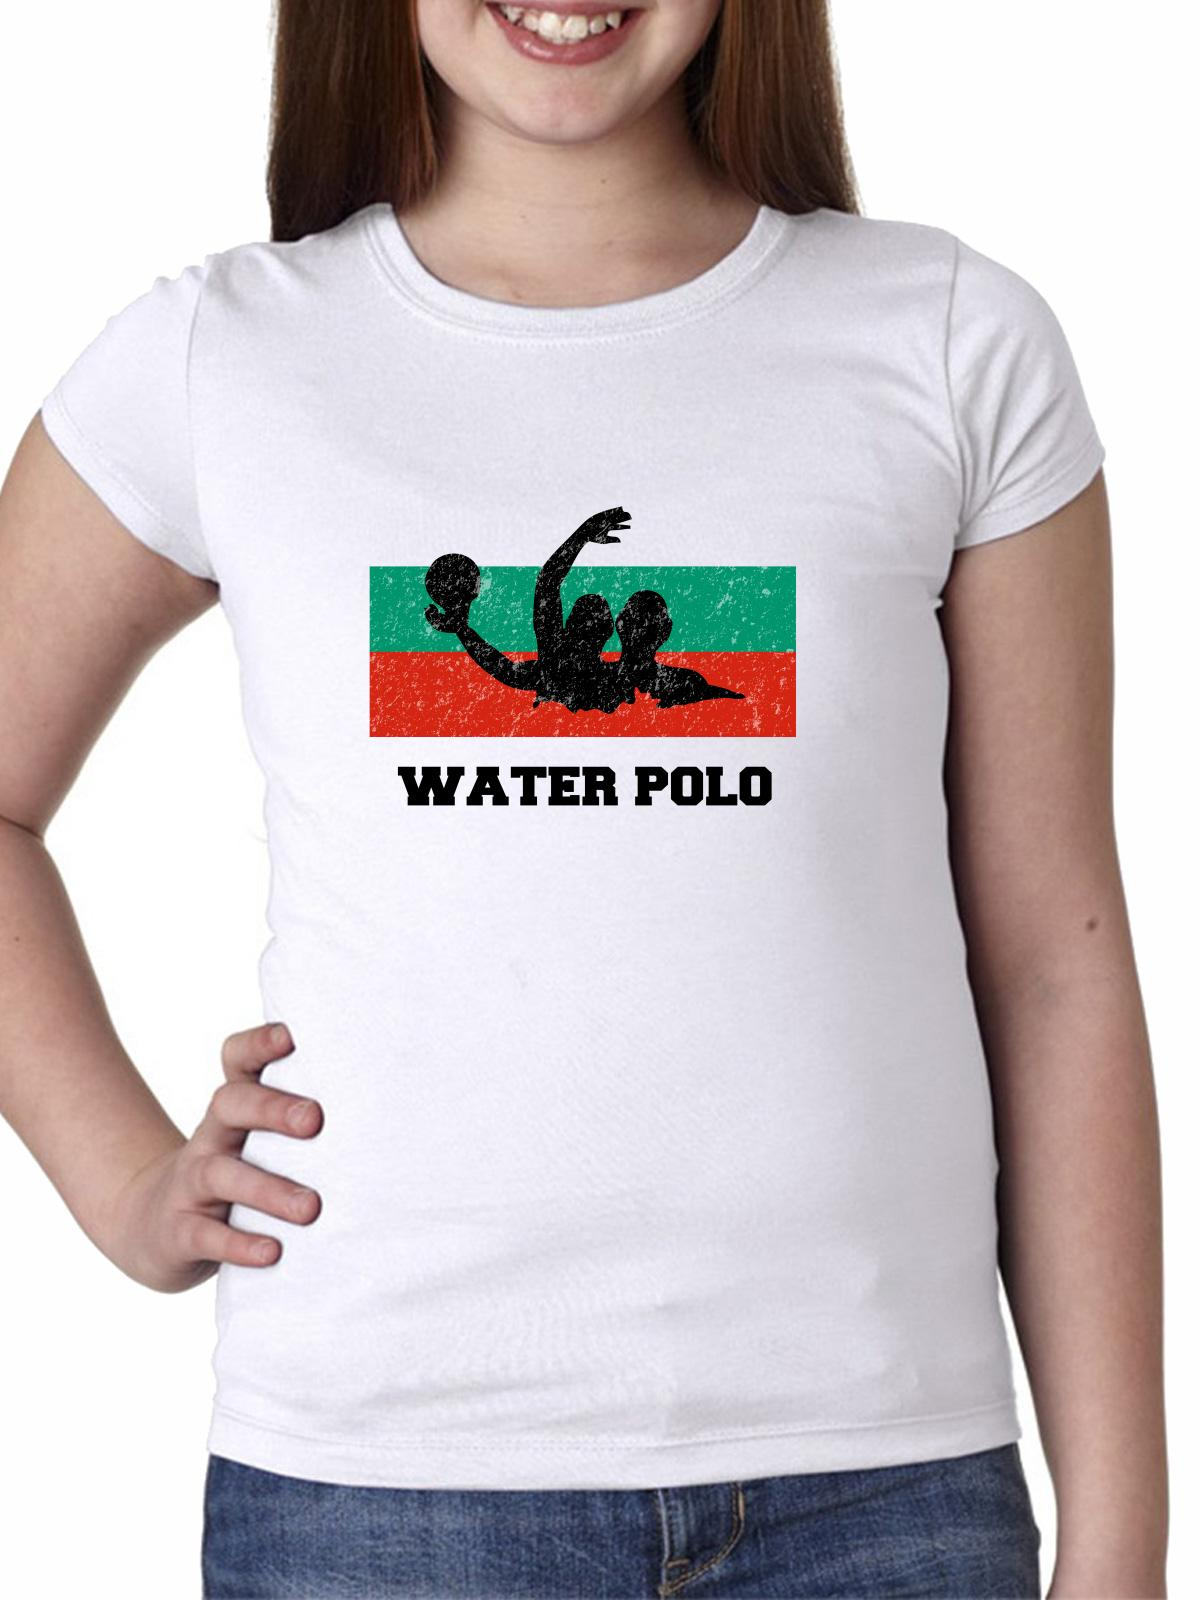 Bulgaria Olympic Water Polo Flag Silhouette Girl's Cotton Youth T-Shirt by Hollywood Thread